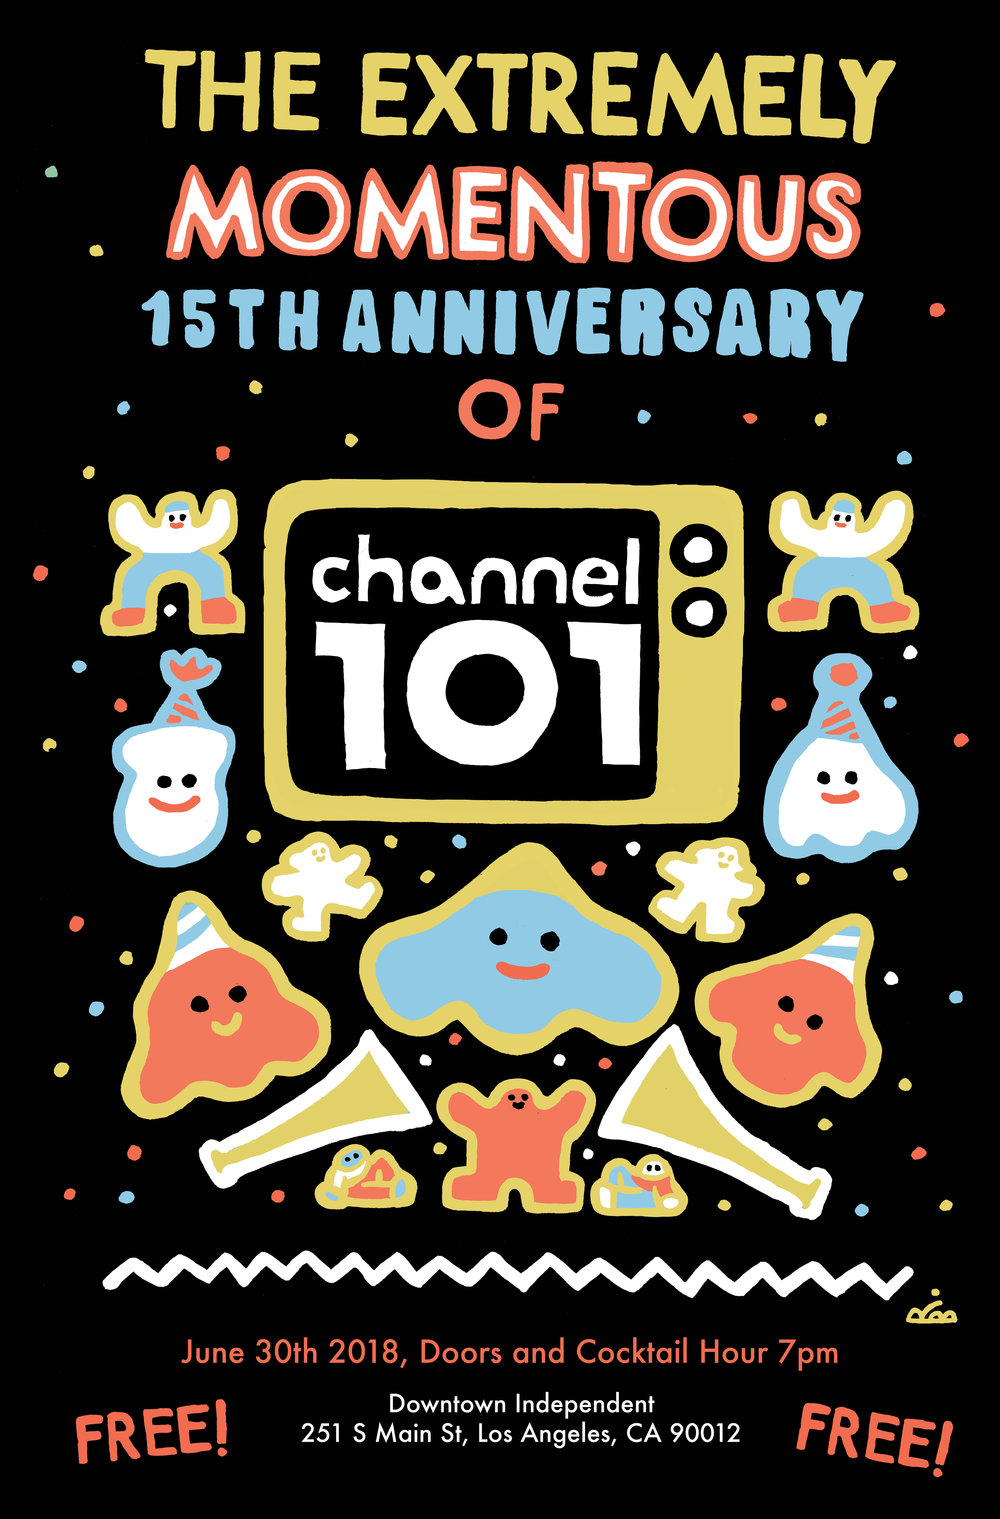 channel 101 poster final 2small.jpg